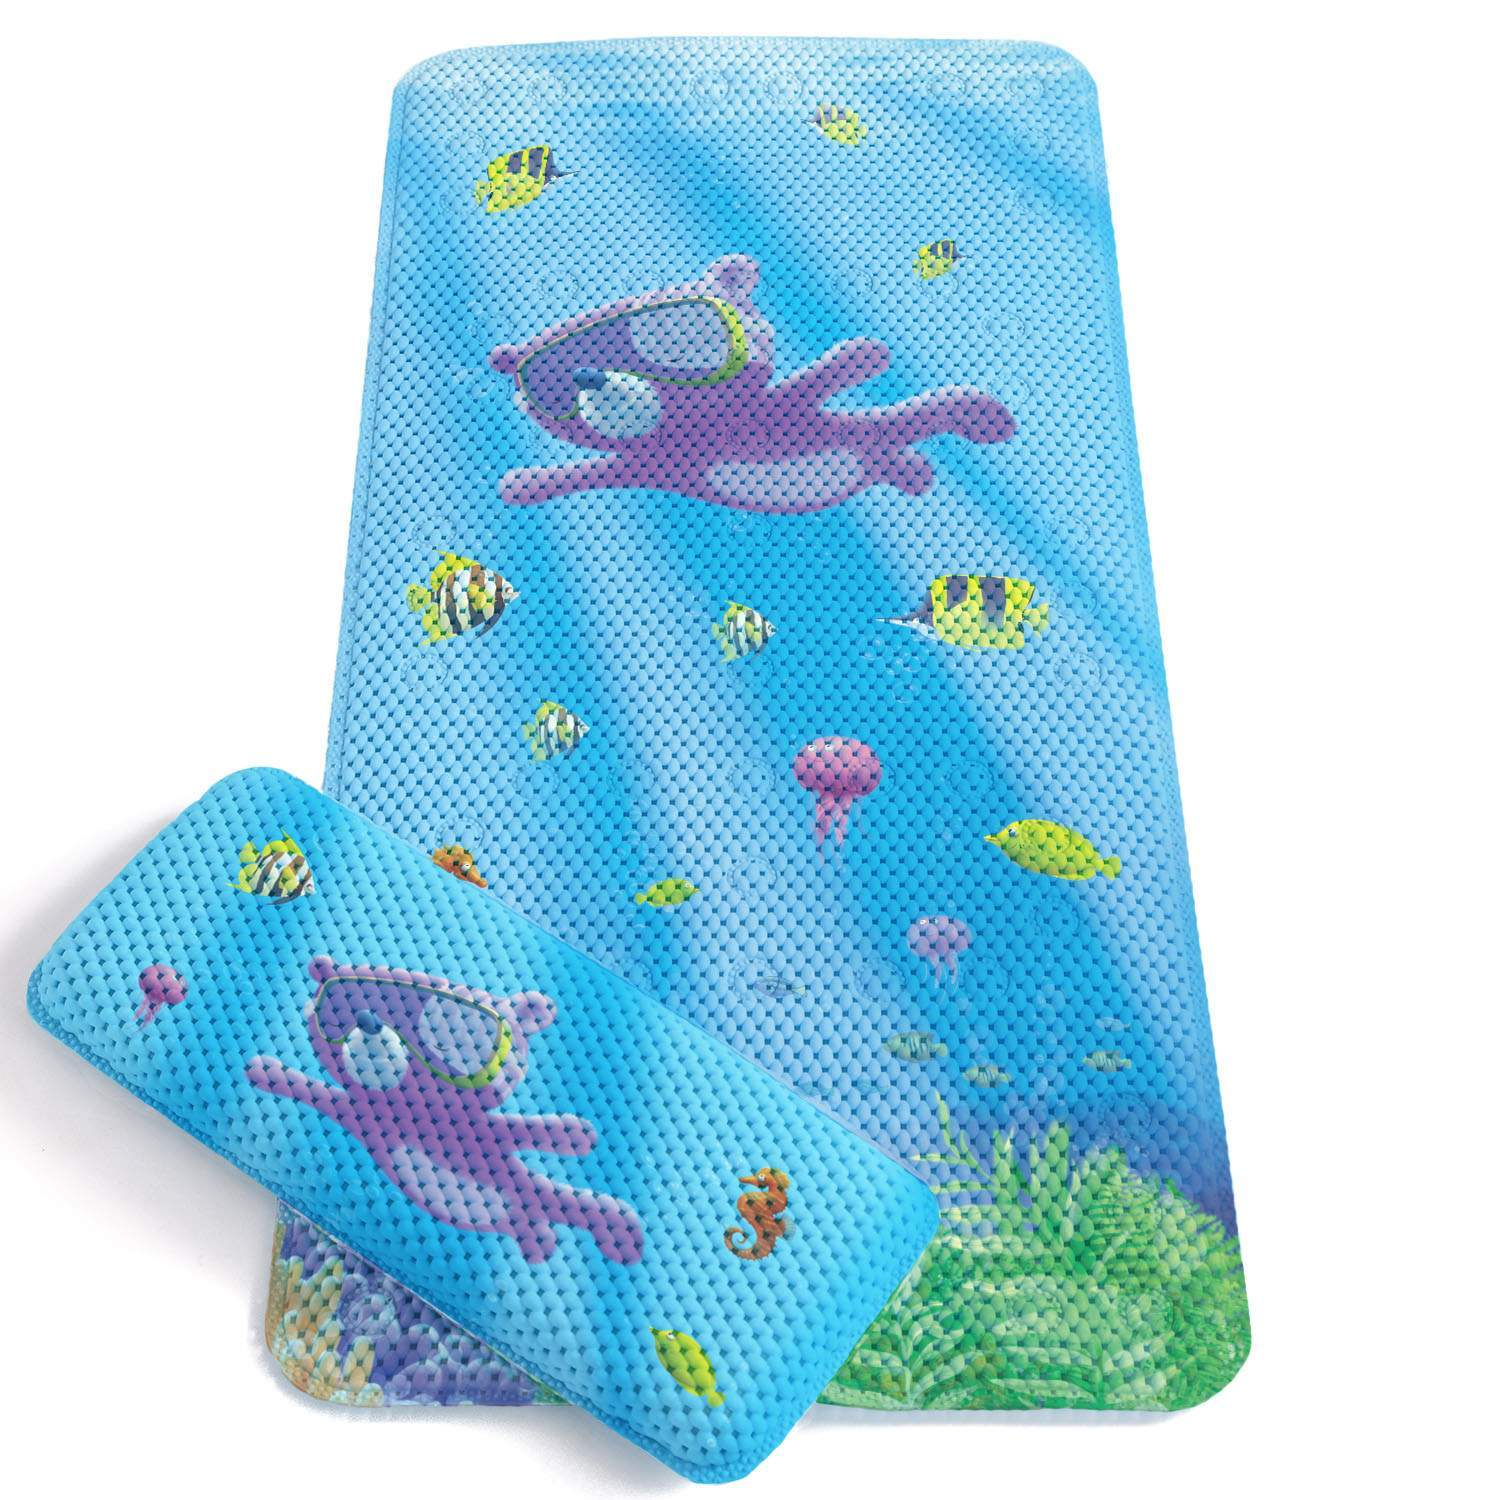 Bathtime Accessories - Pitter Patter Toys & Nursery